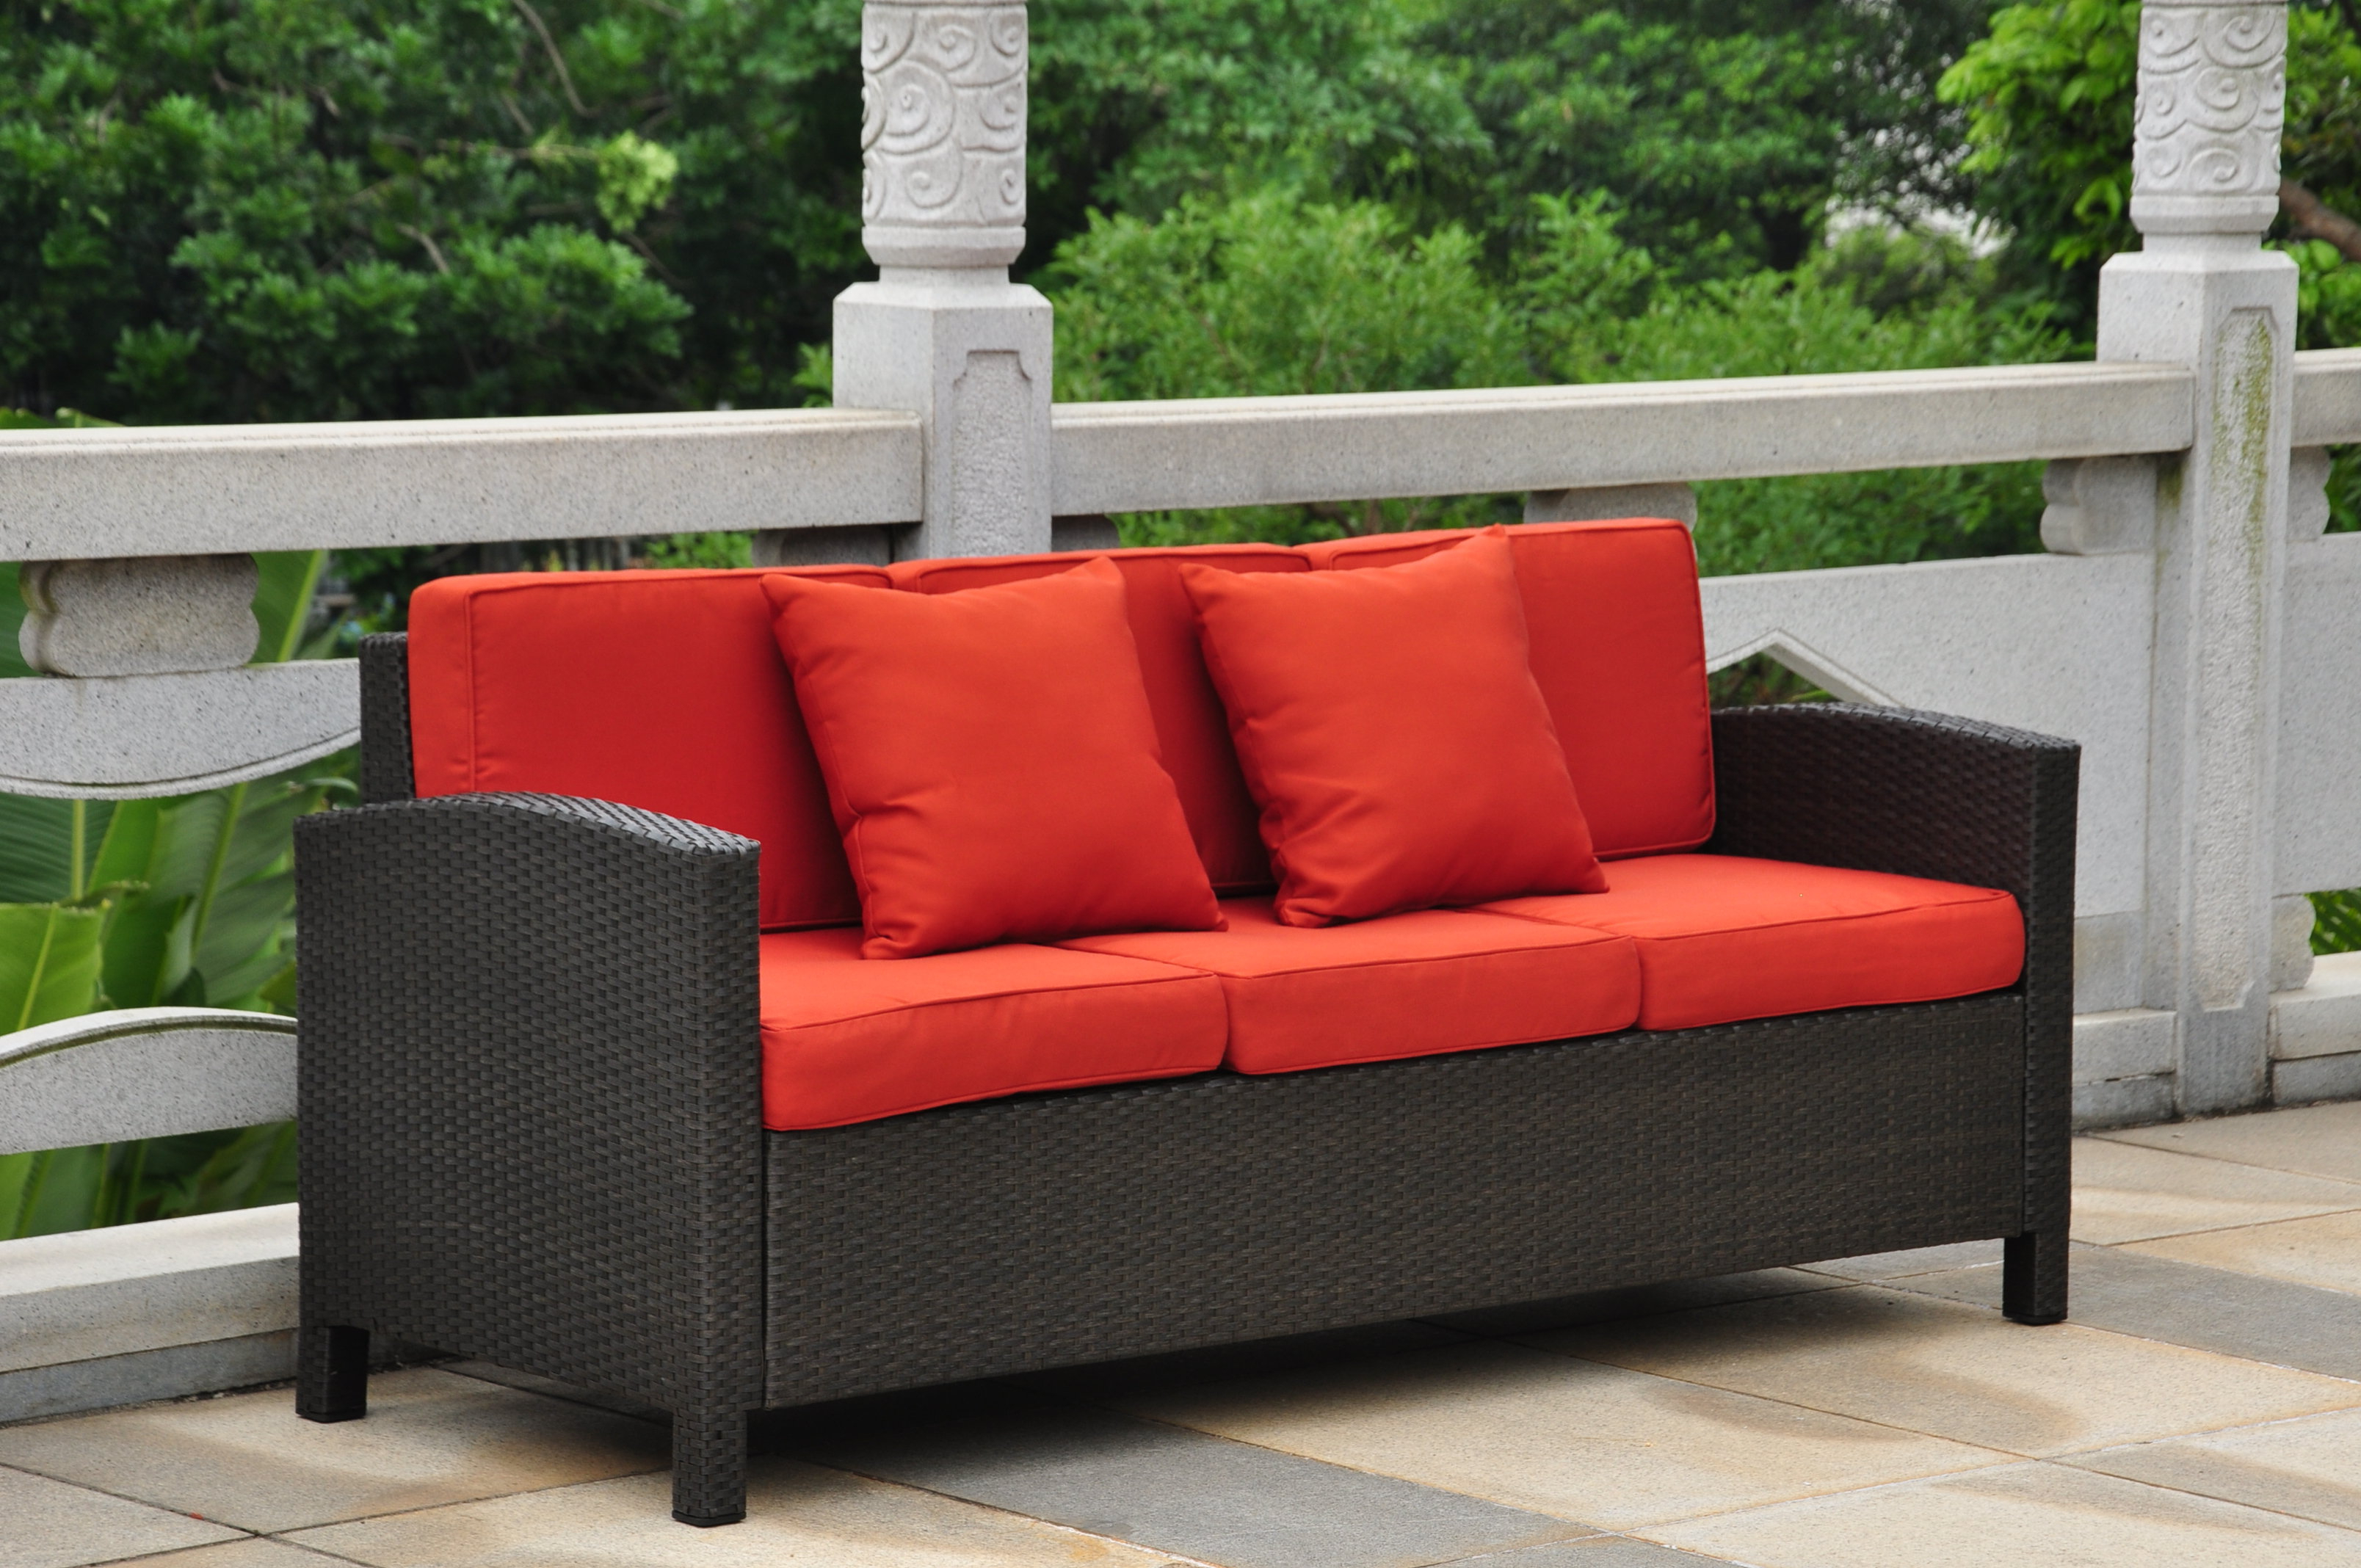 Well Known Katzer Patio Sofas With Cushions With Regard To Katzer Patio Sofa With Cushions (View 2 of 20)